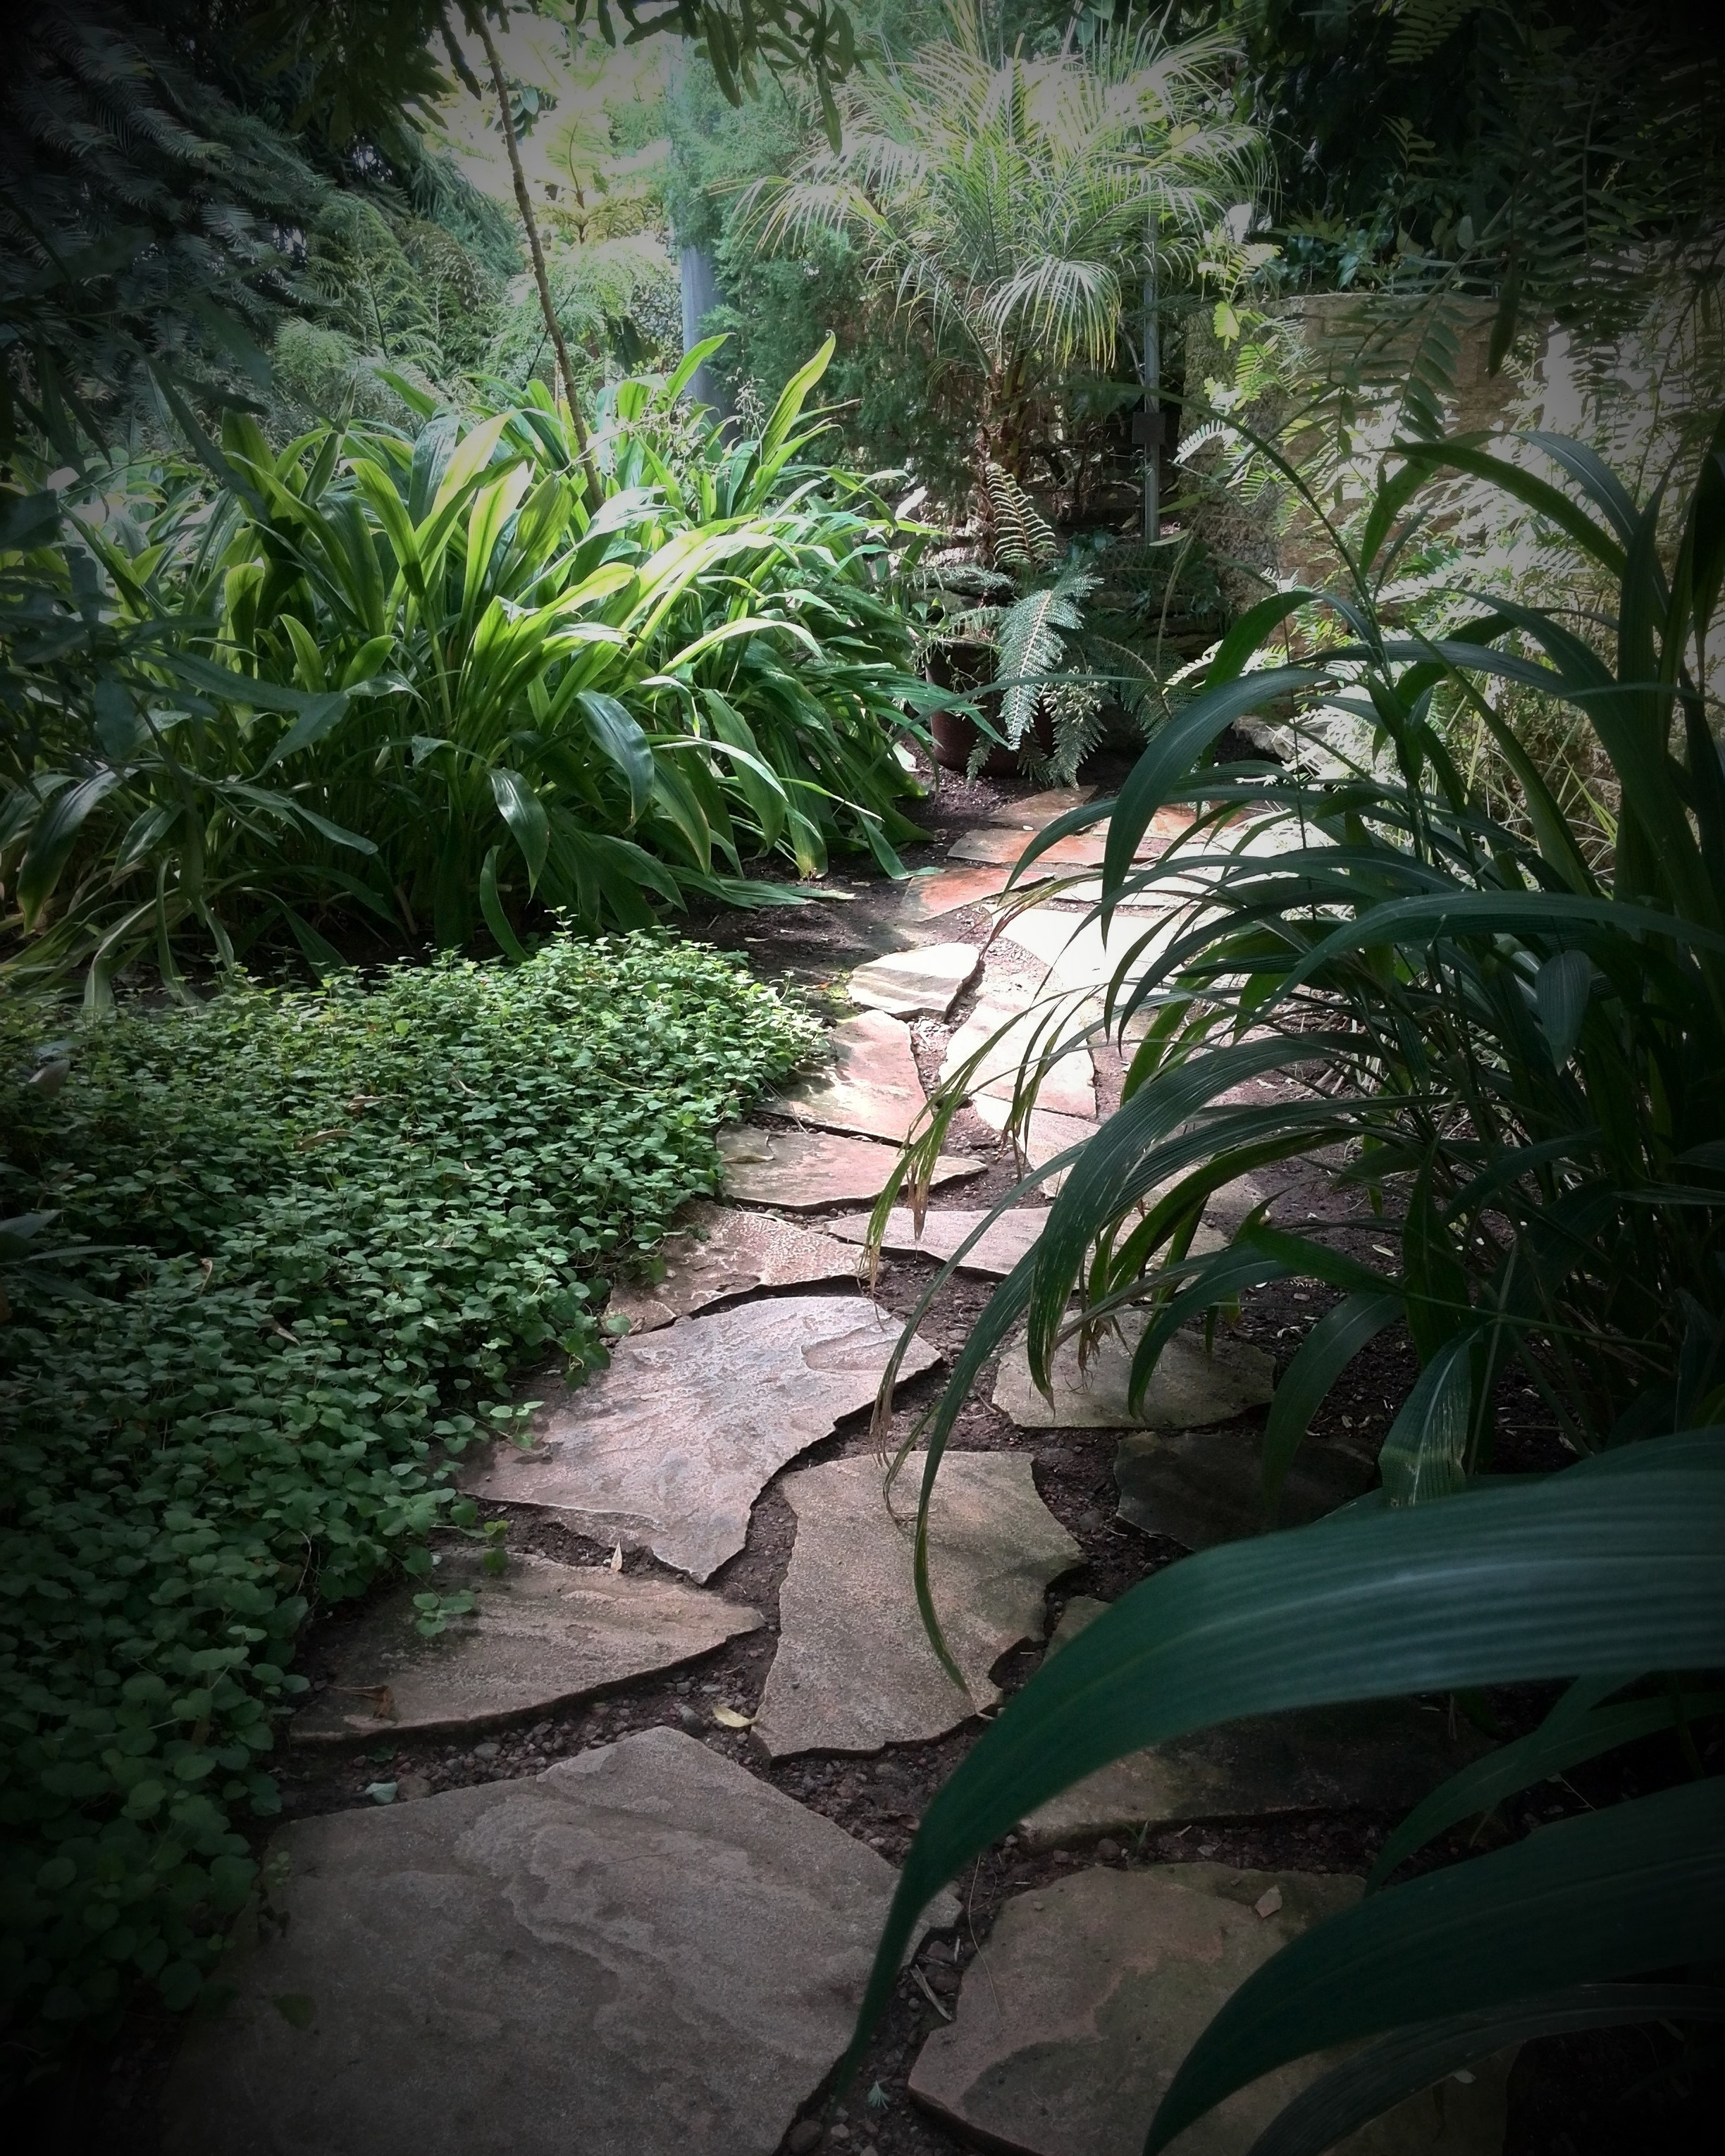 In the Pim's garden. In the backyard of a cozy cafe, the ...